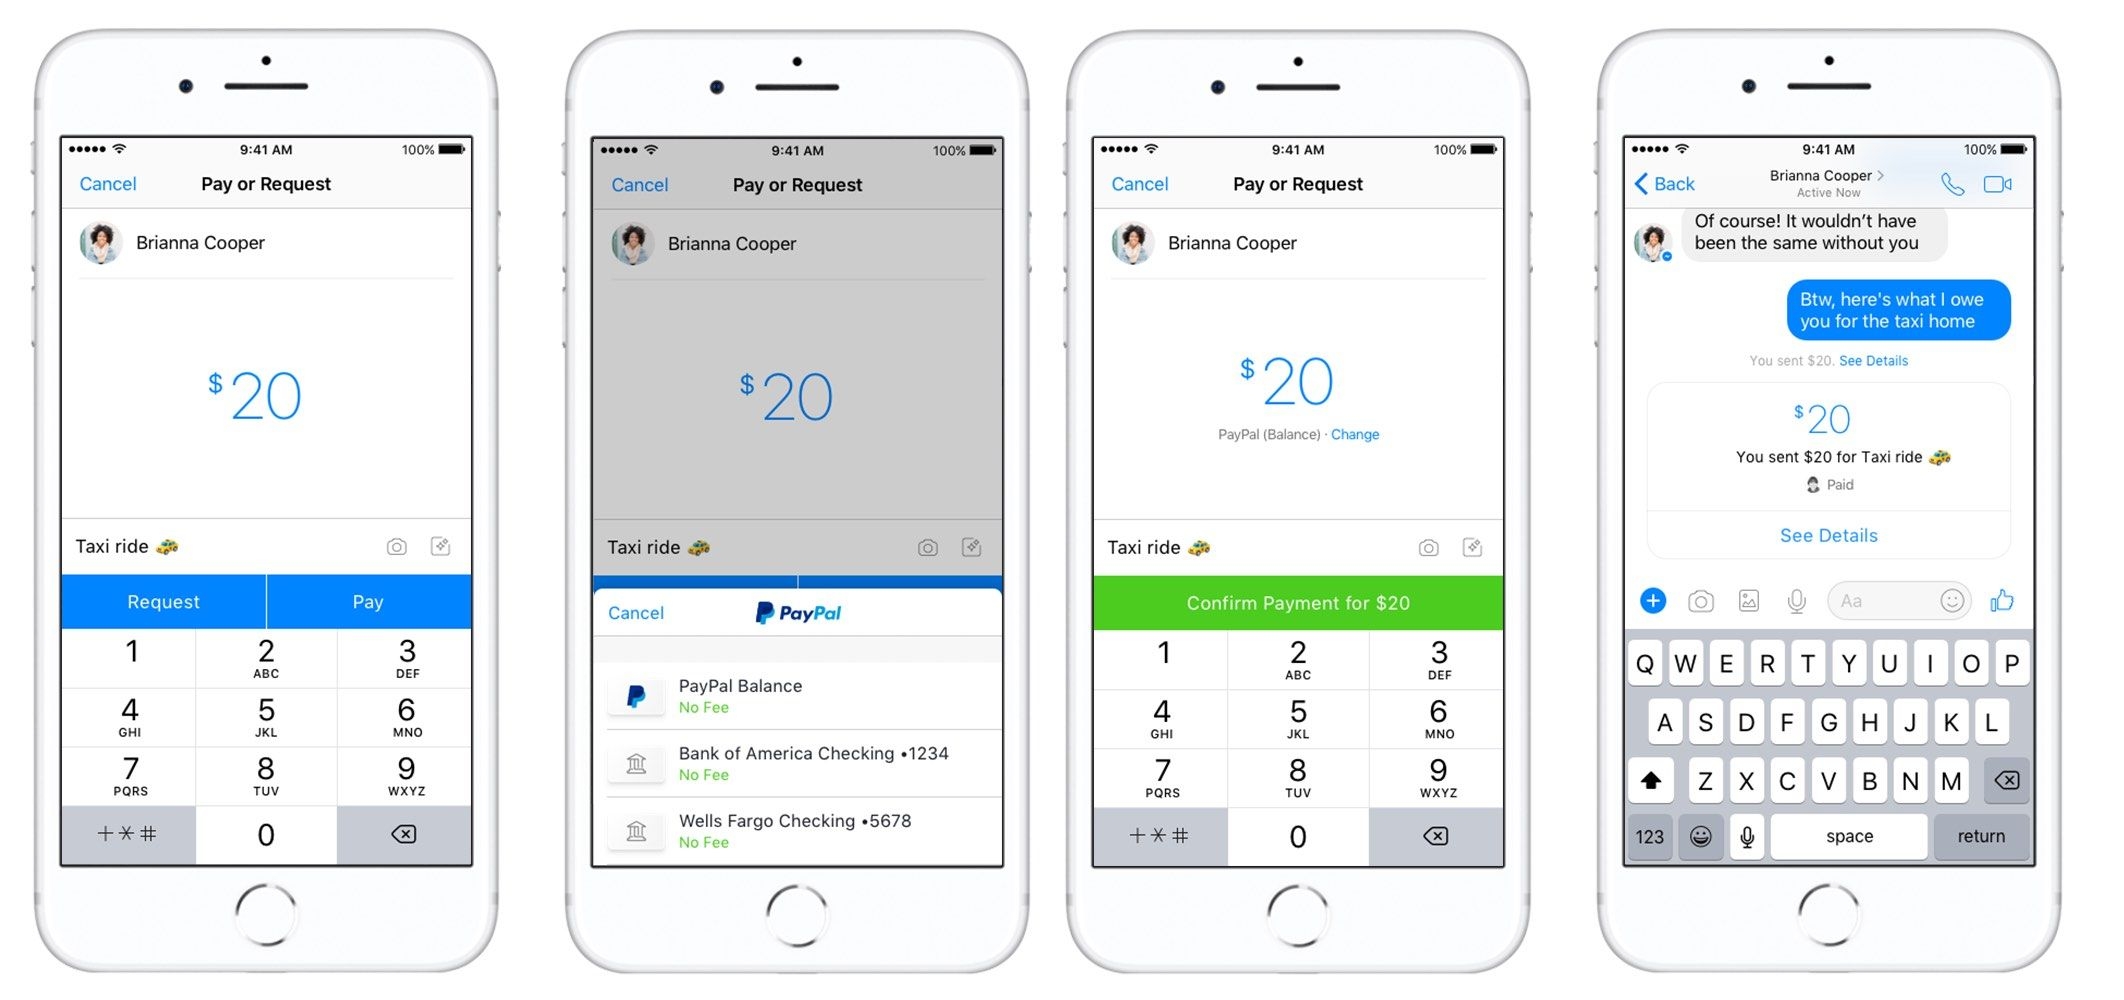 Facebook's Adding PayPal as a New Peer-to-Peer Payment